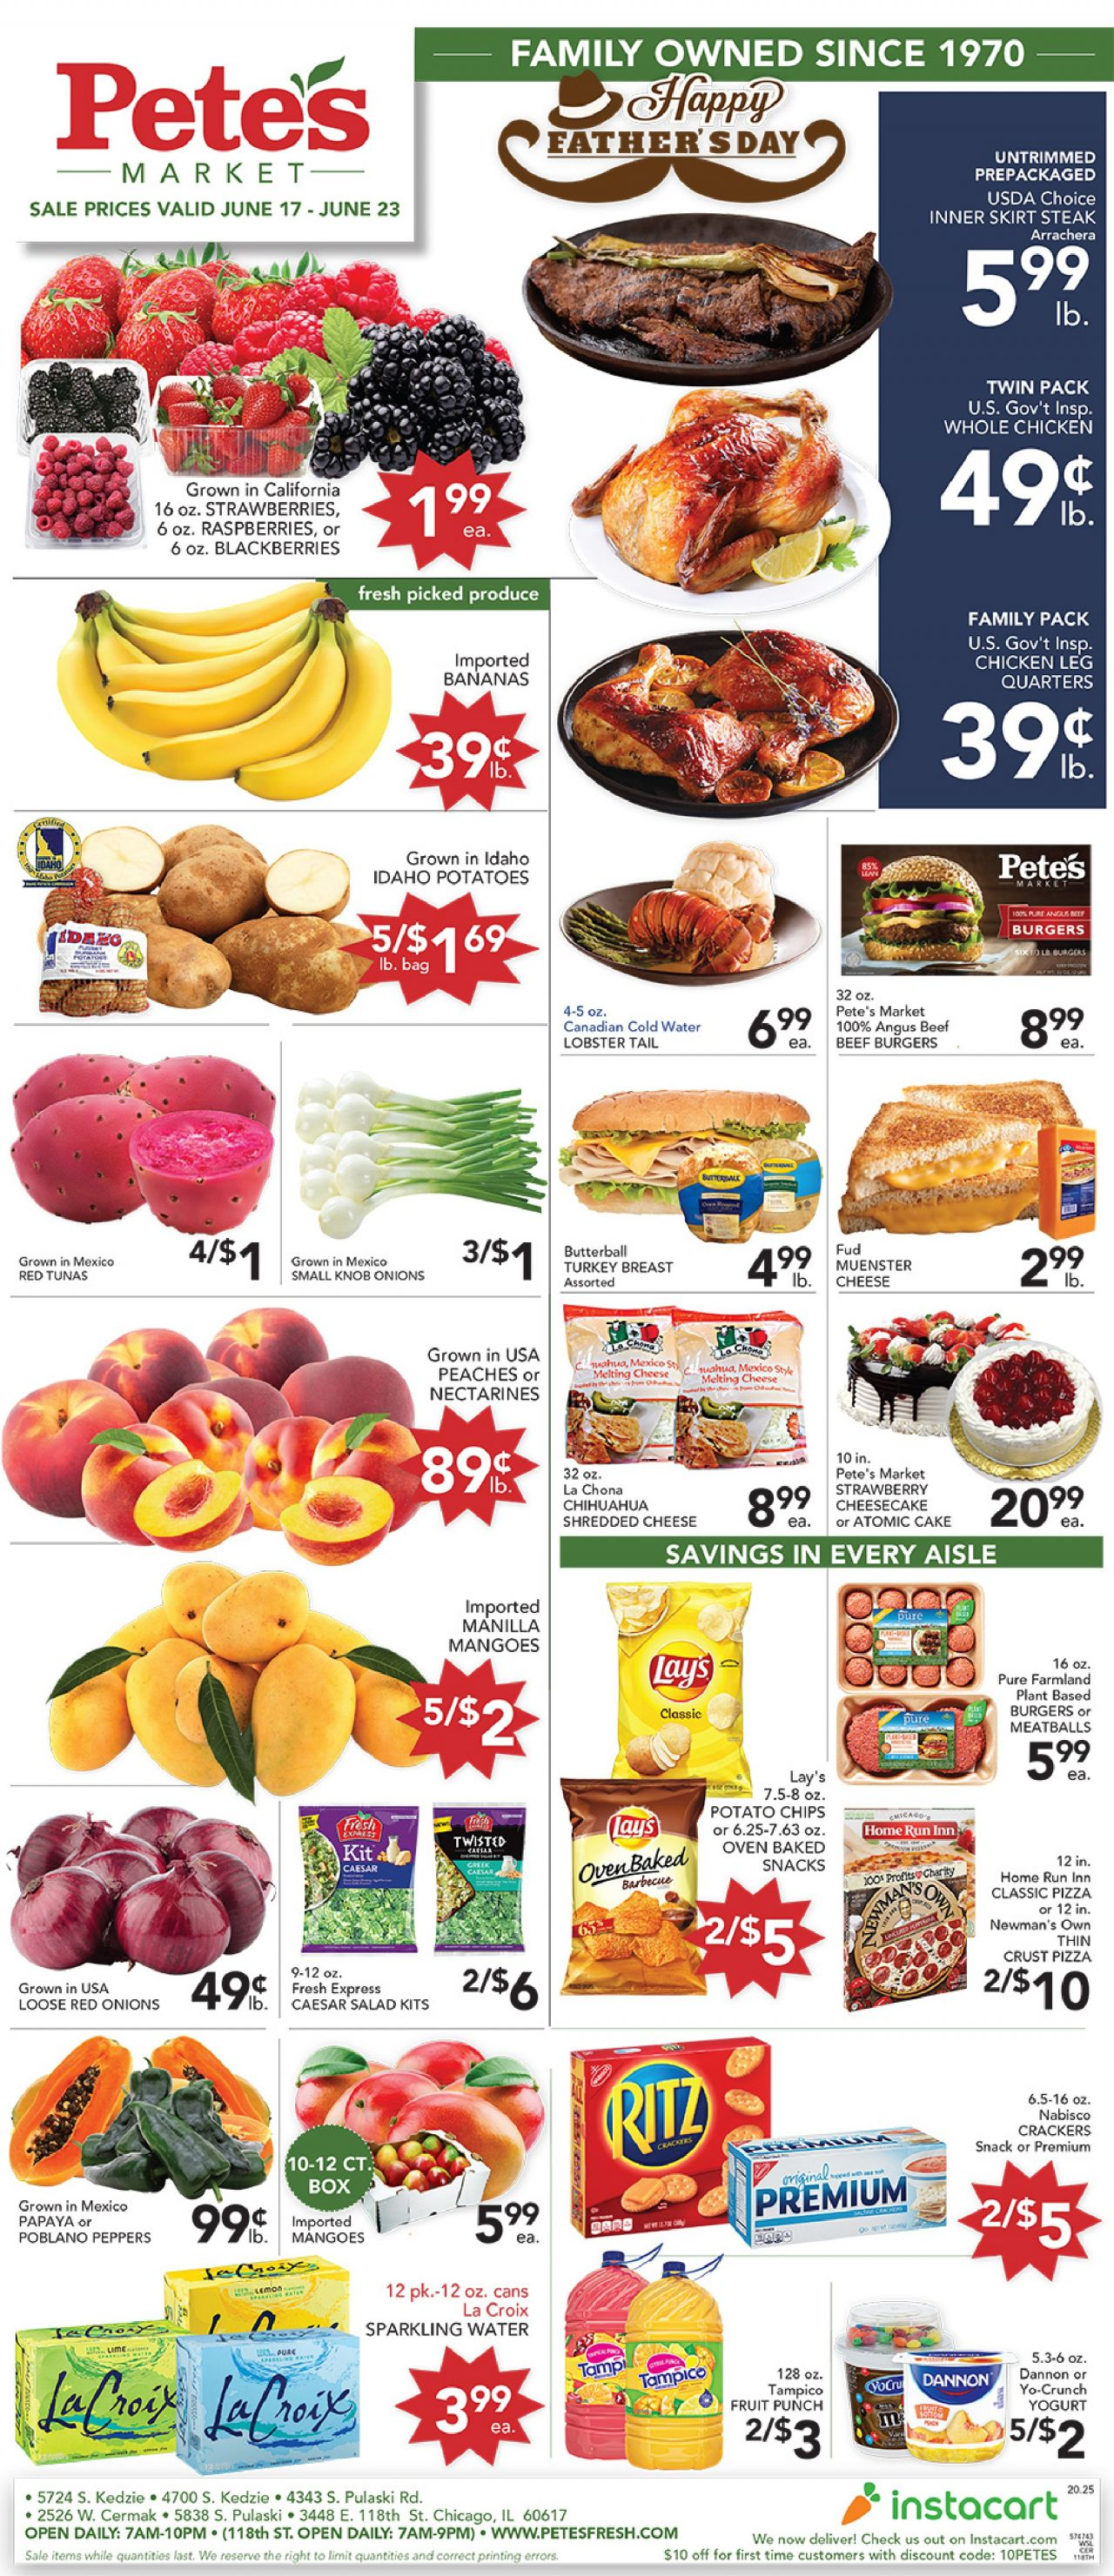 Pin on TOP 20 Weekly Deals From Your Favorite Stores